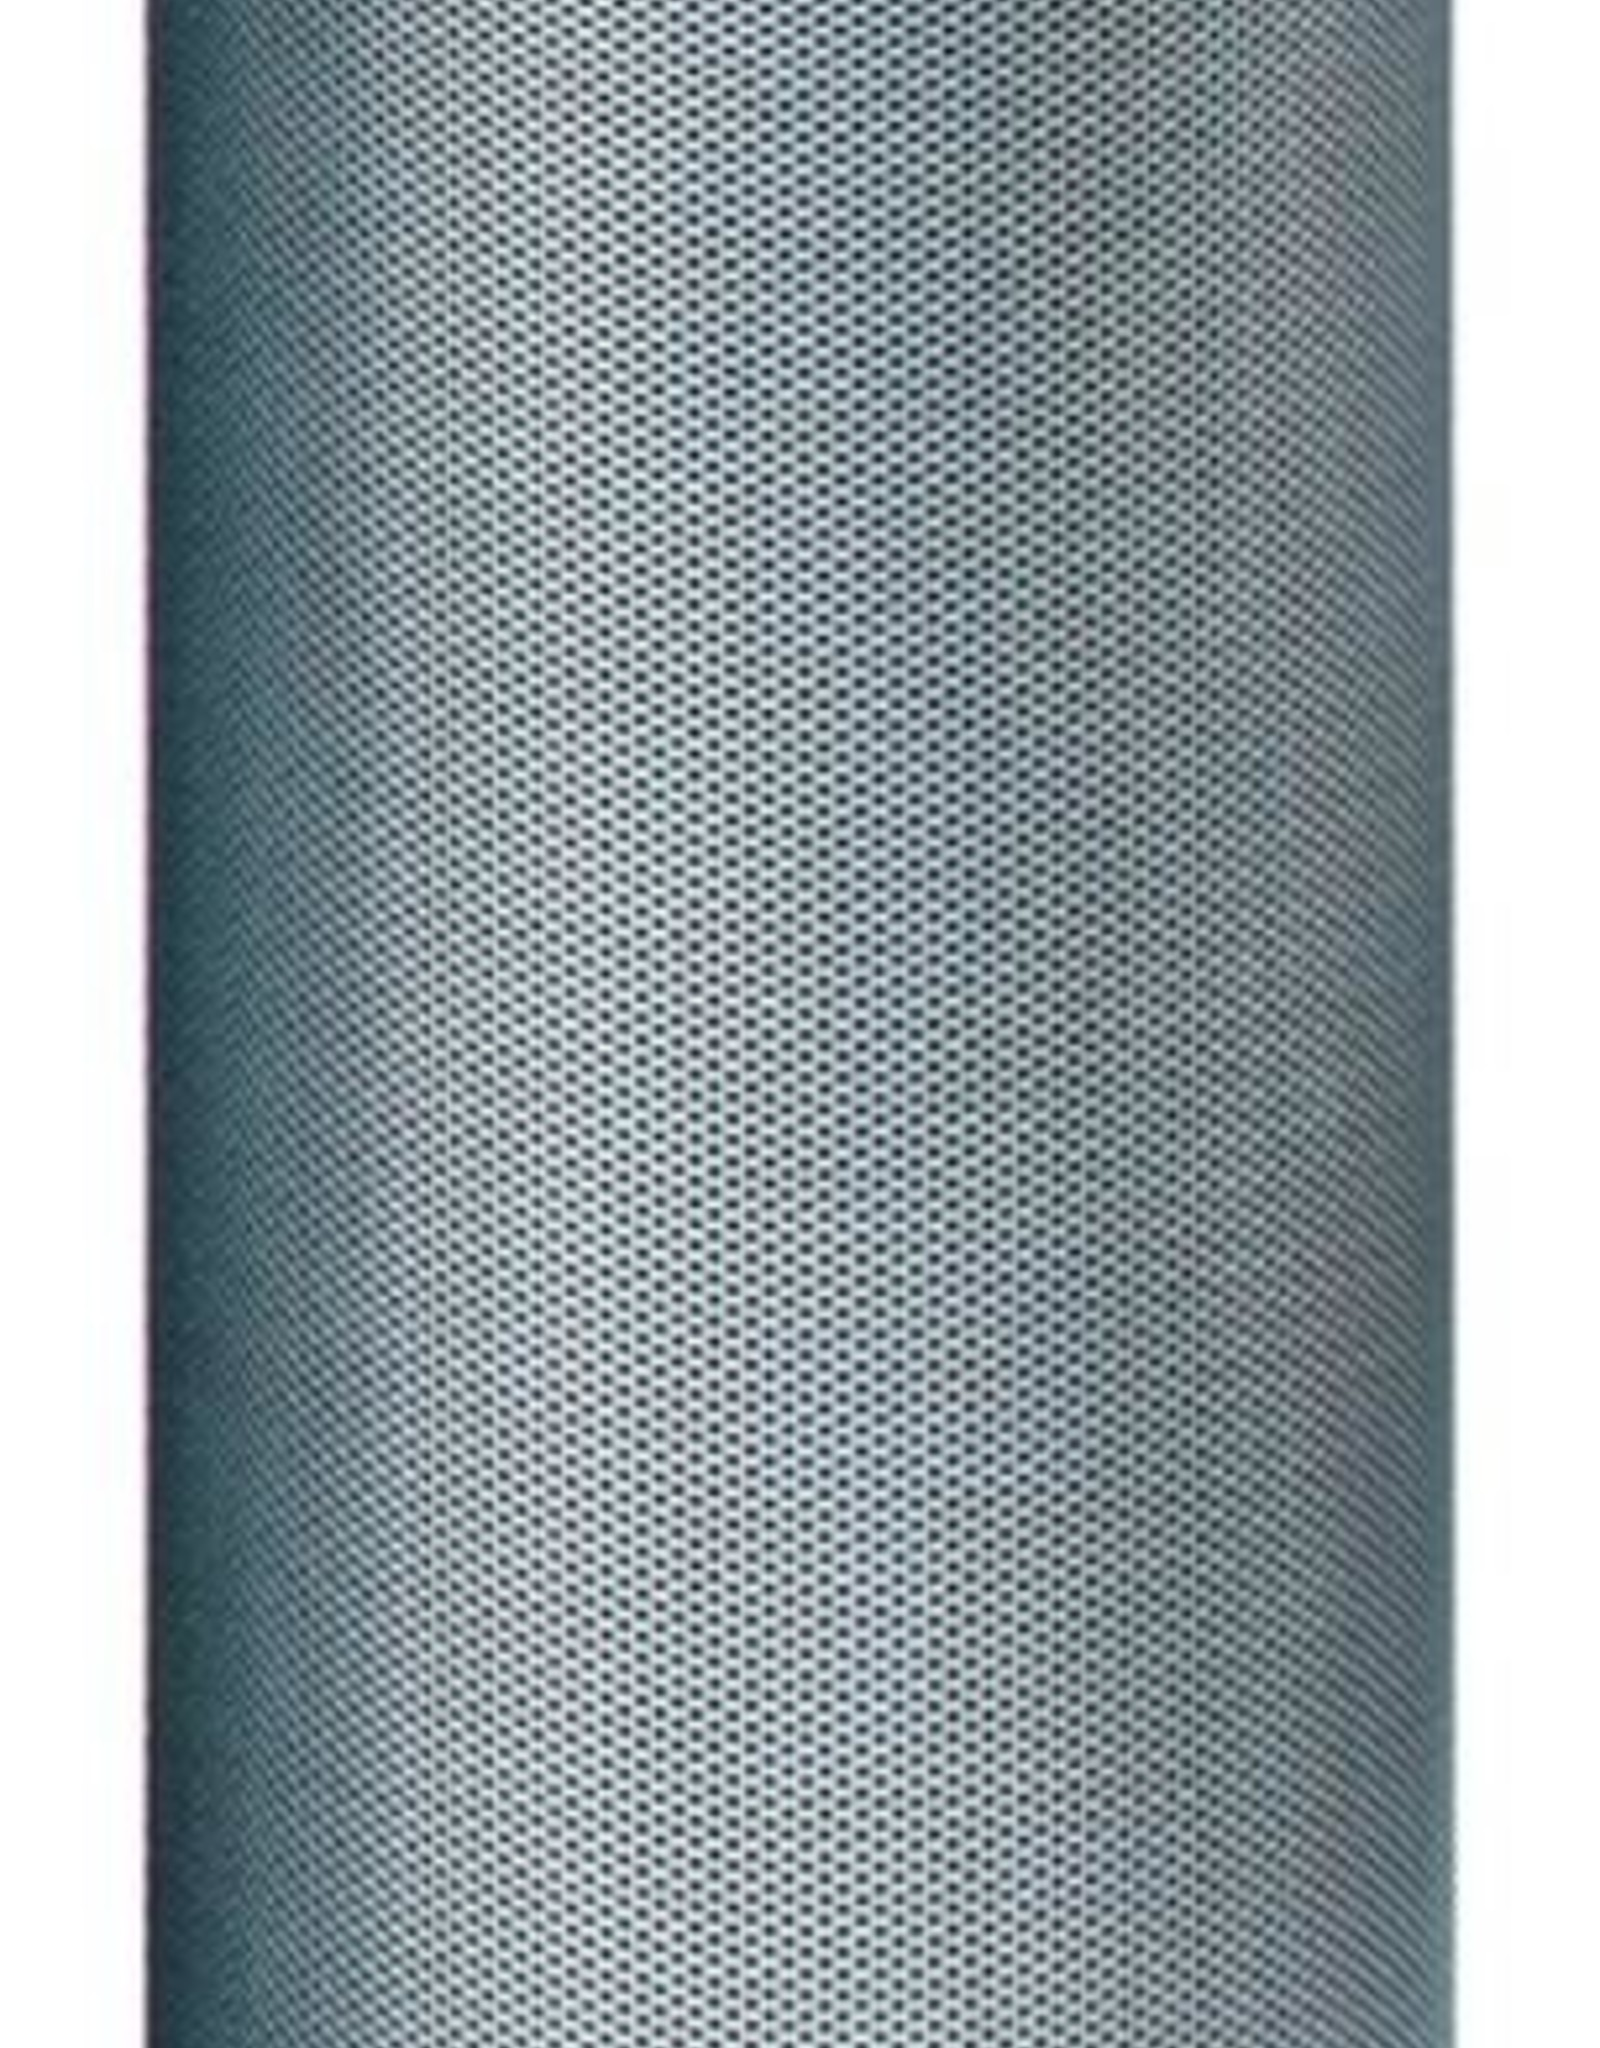 CAN FAN Can-Filter® has designed and built the Can-Lite™ for convenience and long life. 100% Australian Granulated carbon, aluminum top and bottom, integrated flange and 51% open perforation are features of the Can-Lite™ filter. The Can-Lite™ is available in 12 s